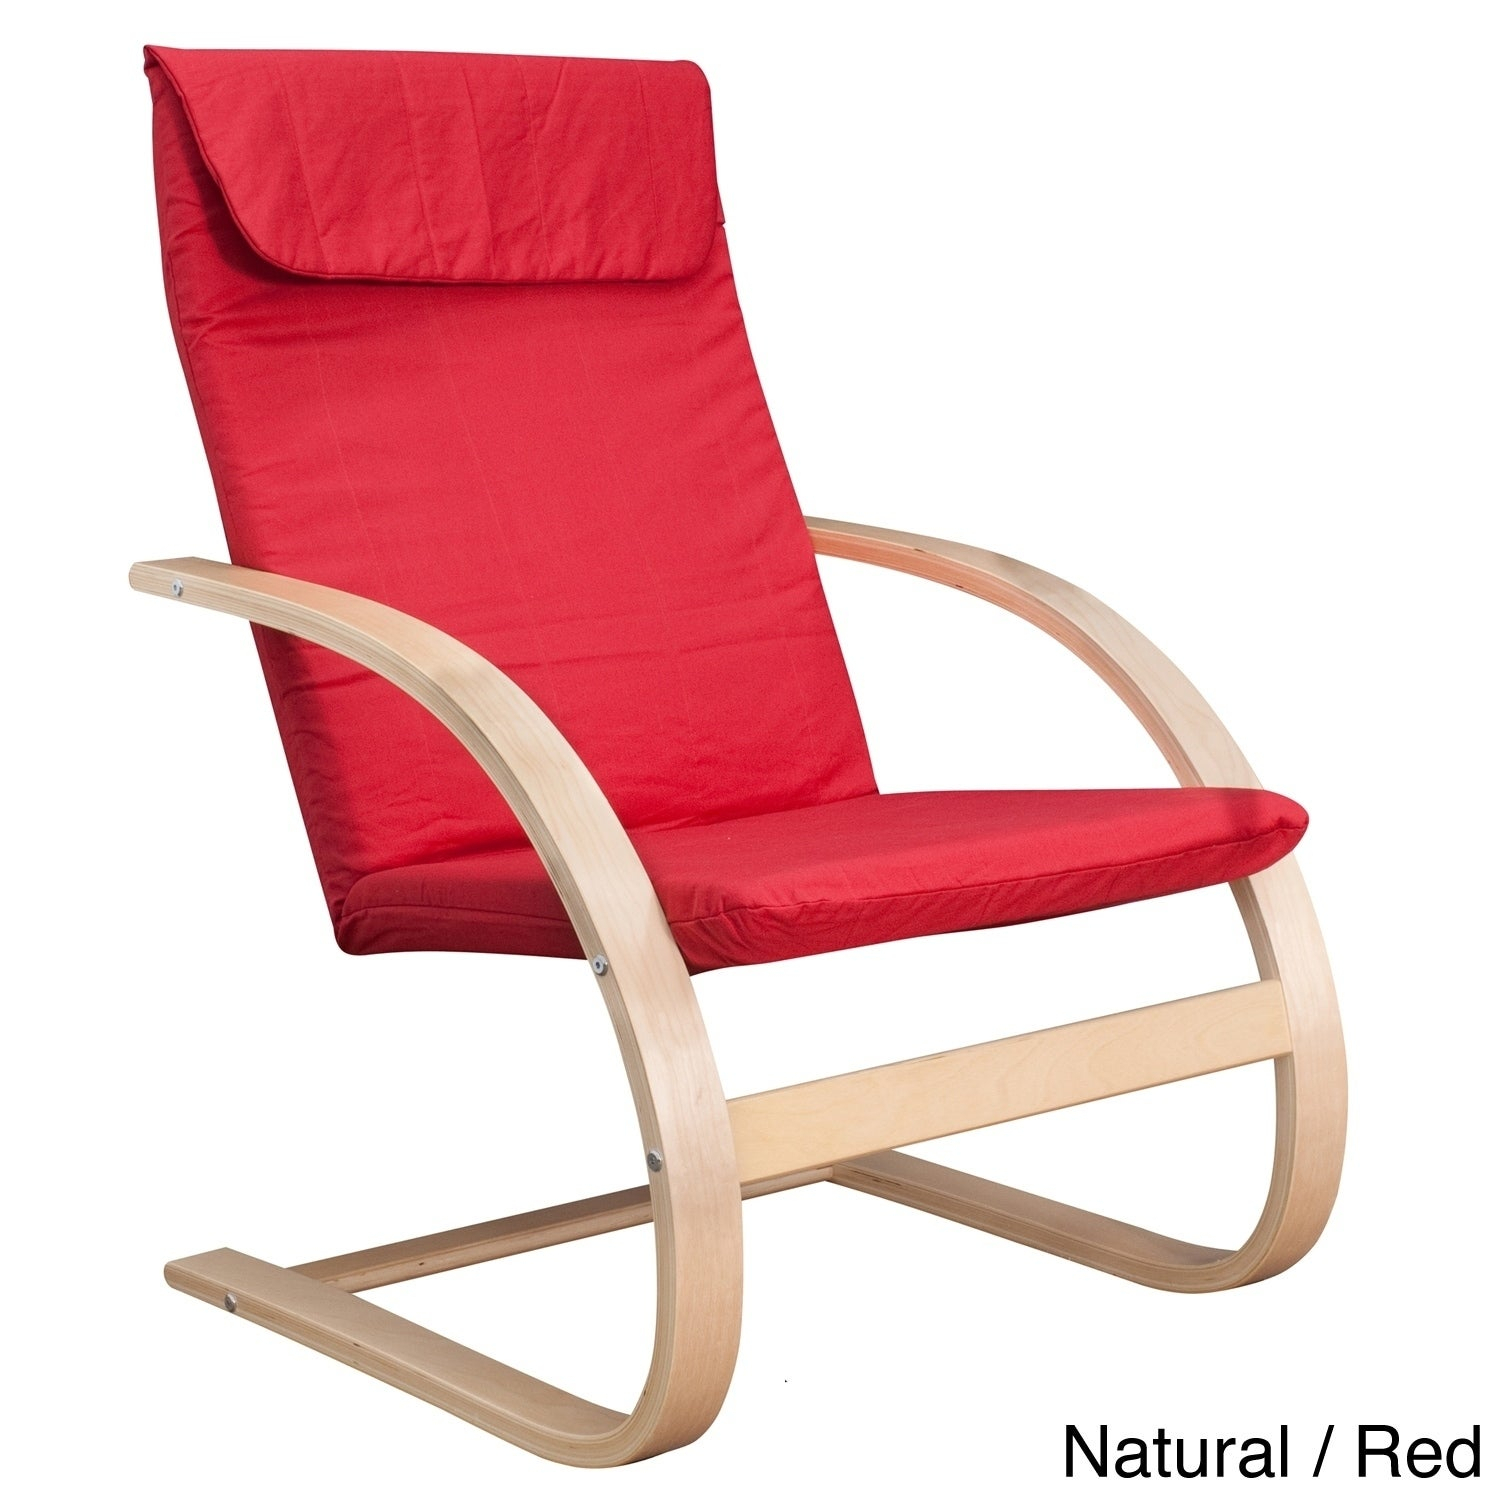 Inspiration about Mia Bentwood Chair Regarding Mia Bentwood Chairs (#8 of 20)